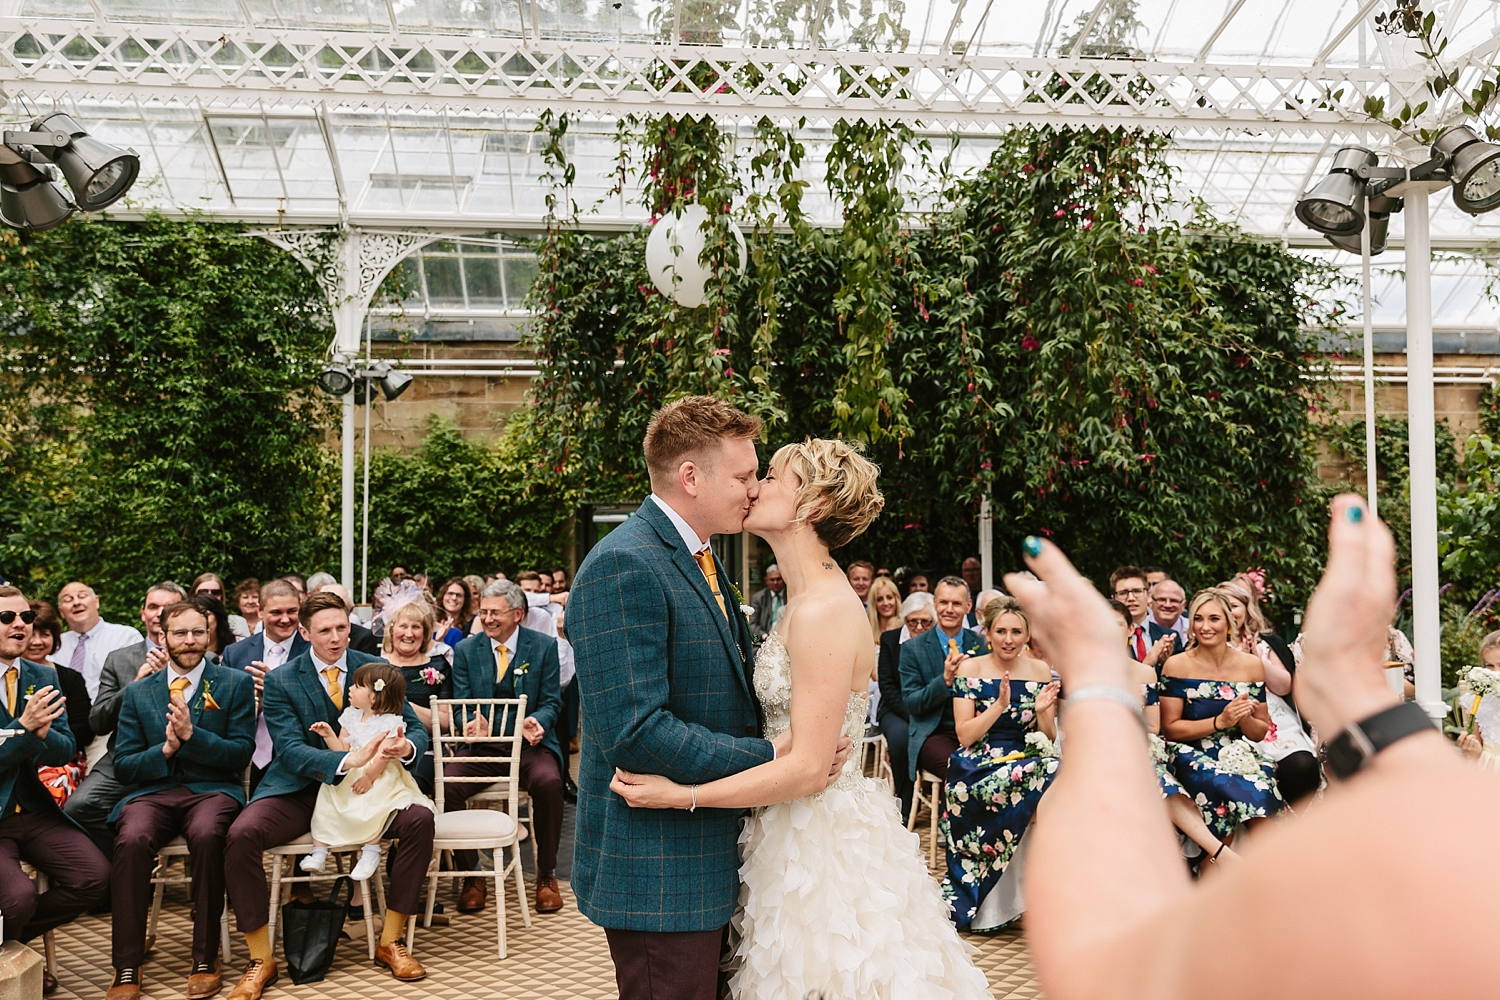 Natlie-Matthew-yorkshire-natural-relaxed-fun-documentary-reportage-candid-wedding-photography-photographer-Derby-Nottingham-Derbyshire-Nottinghamshire-Leicestershire-Lincolnshire-East-Midlands-46.jpg